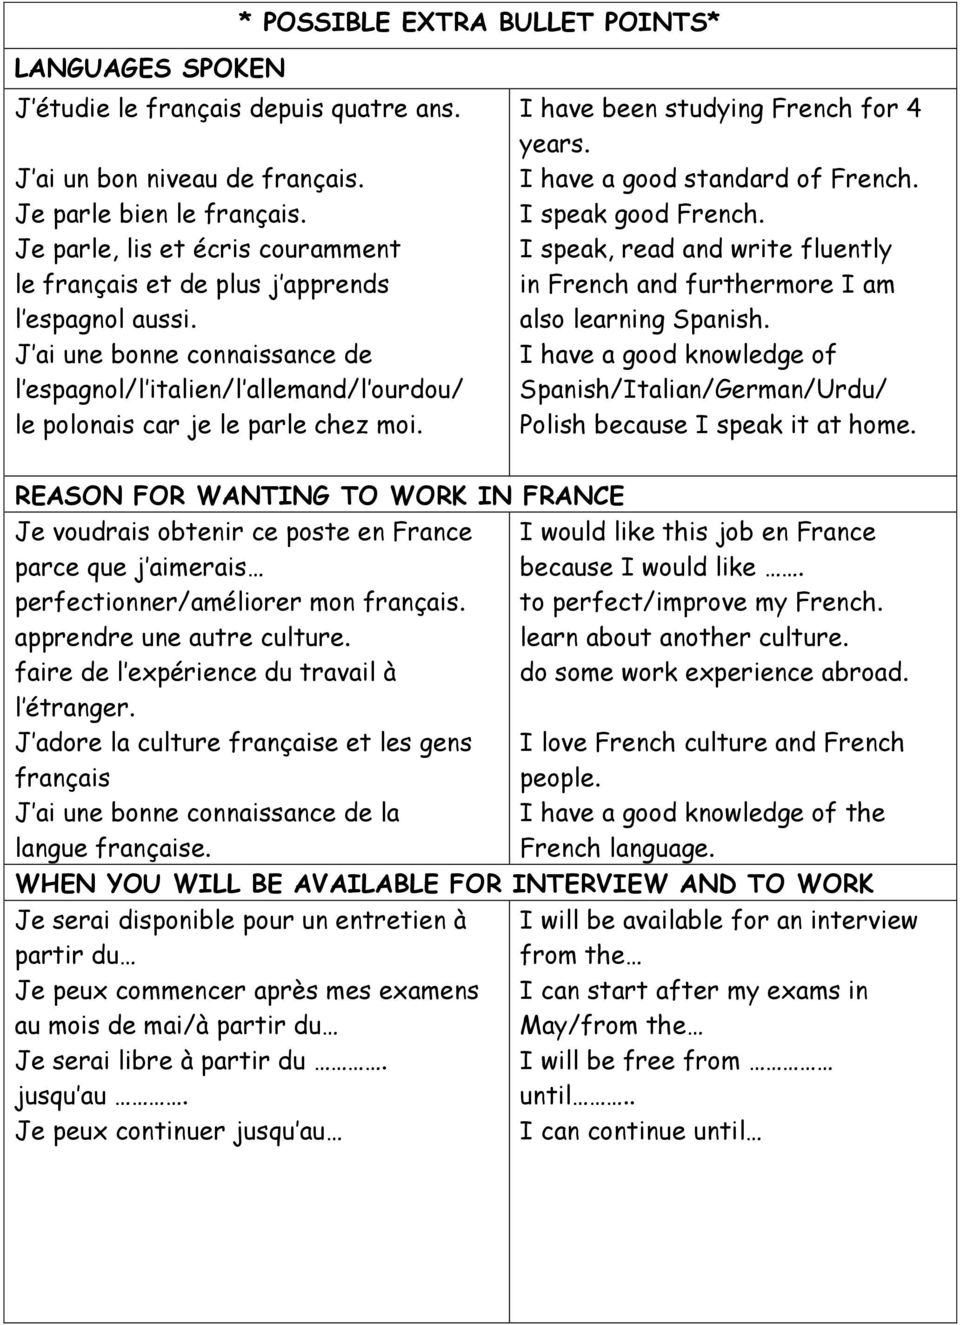 I have been studying French for 4 years. I have a good standard of French. I speak good French. I speak, read and write fluently in French and furthermore I am also learning Spanish.